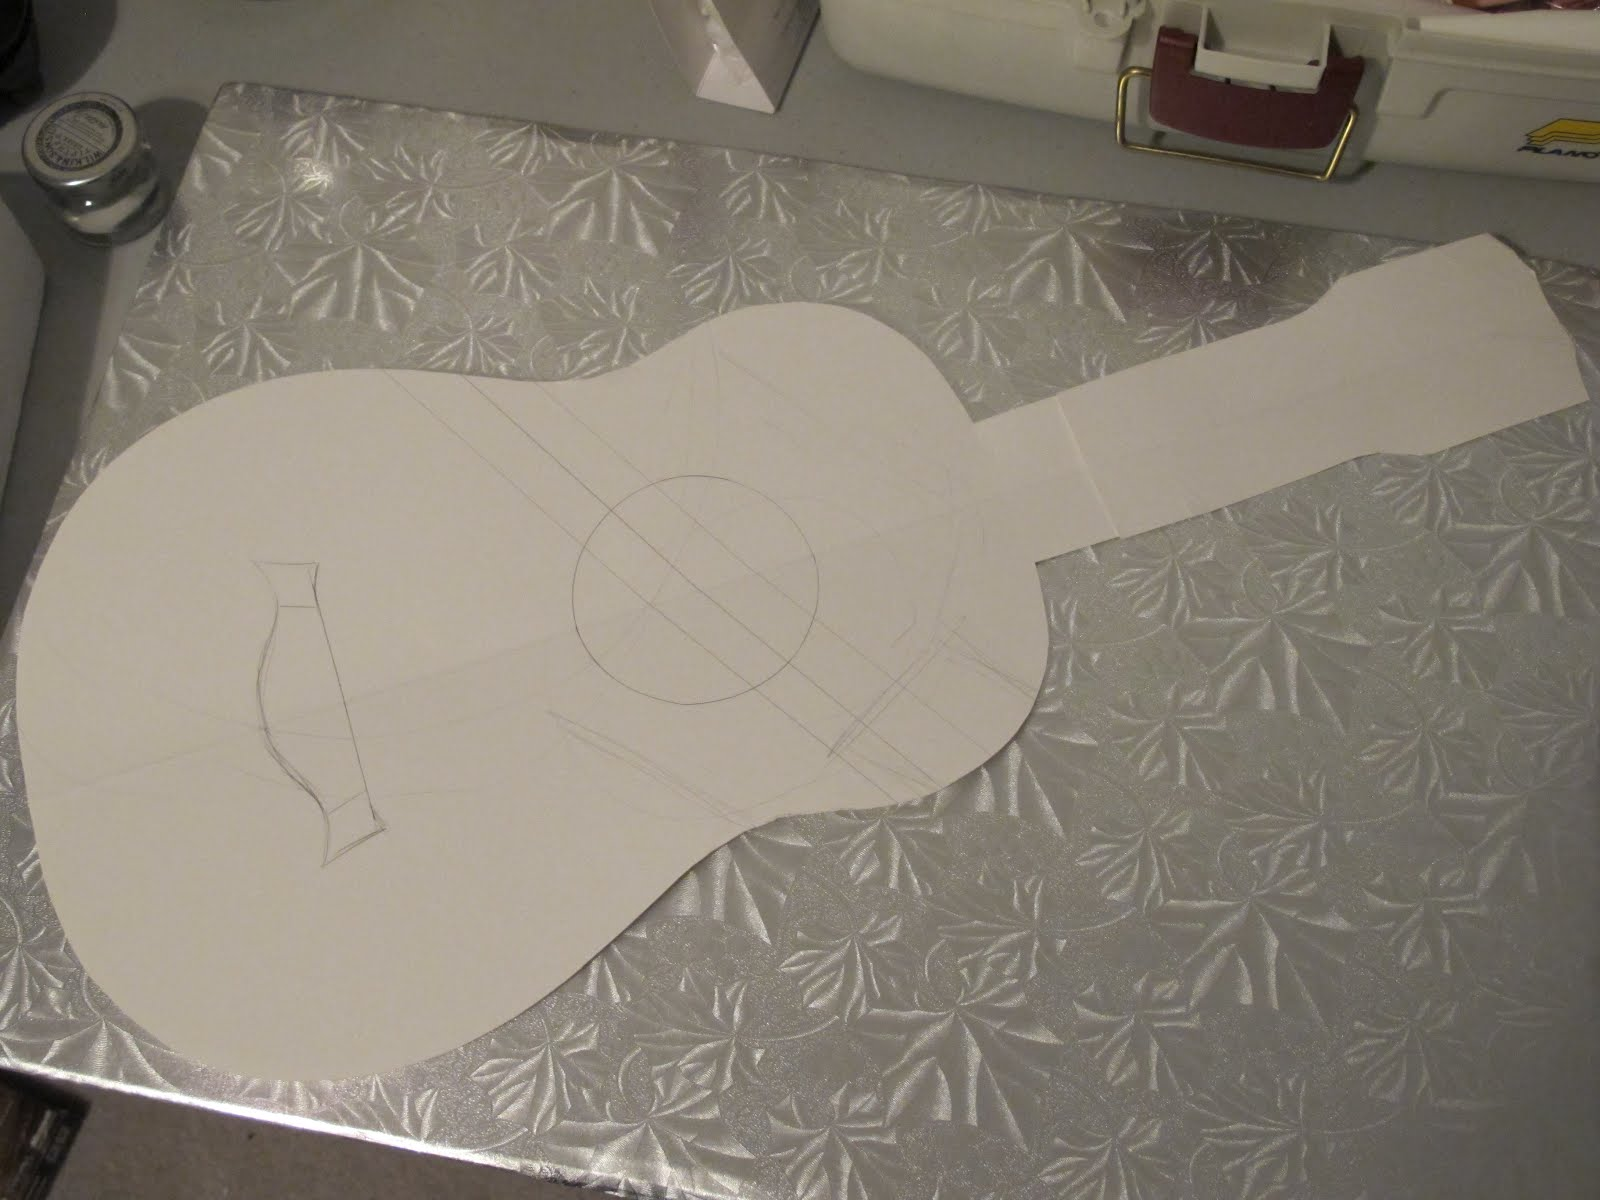 Hollands acoustic guitar side templates learn how for Guitar templates for cakes